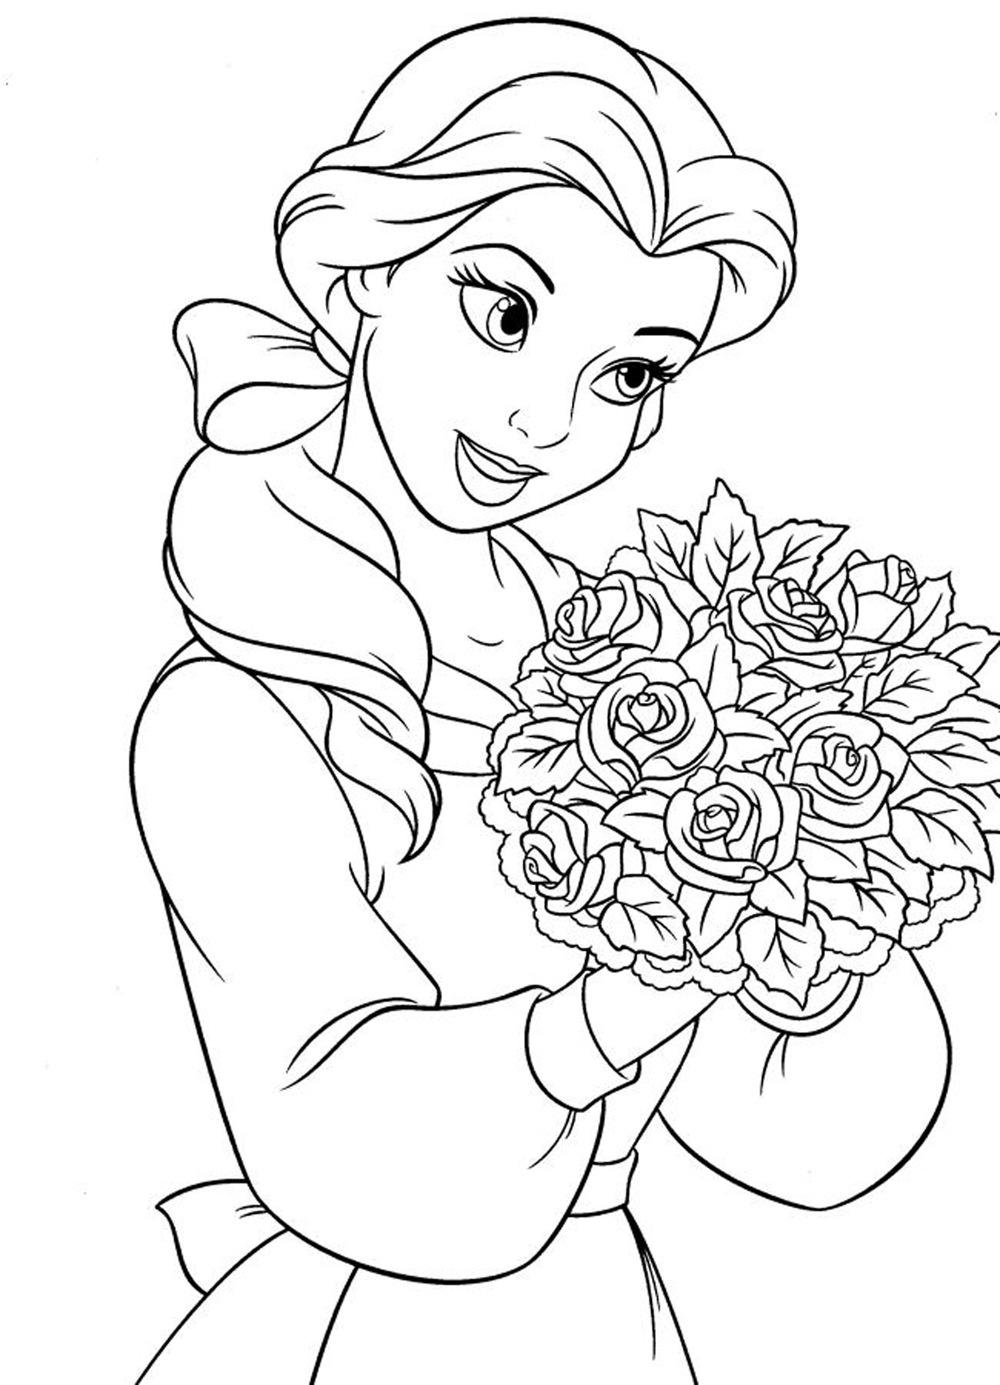 coloring for kids disney disney coloring pages toy story coloring pages for kids coloring disney kids for